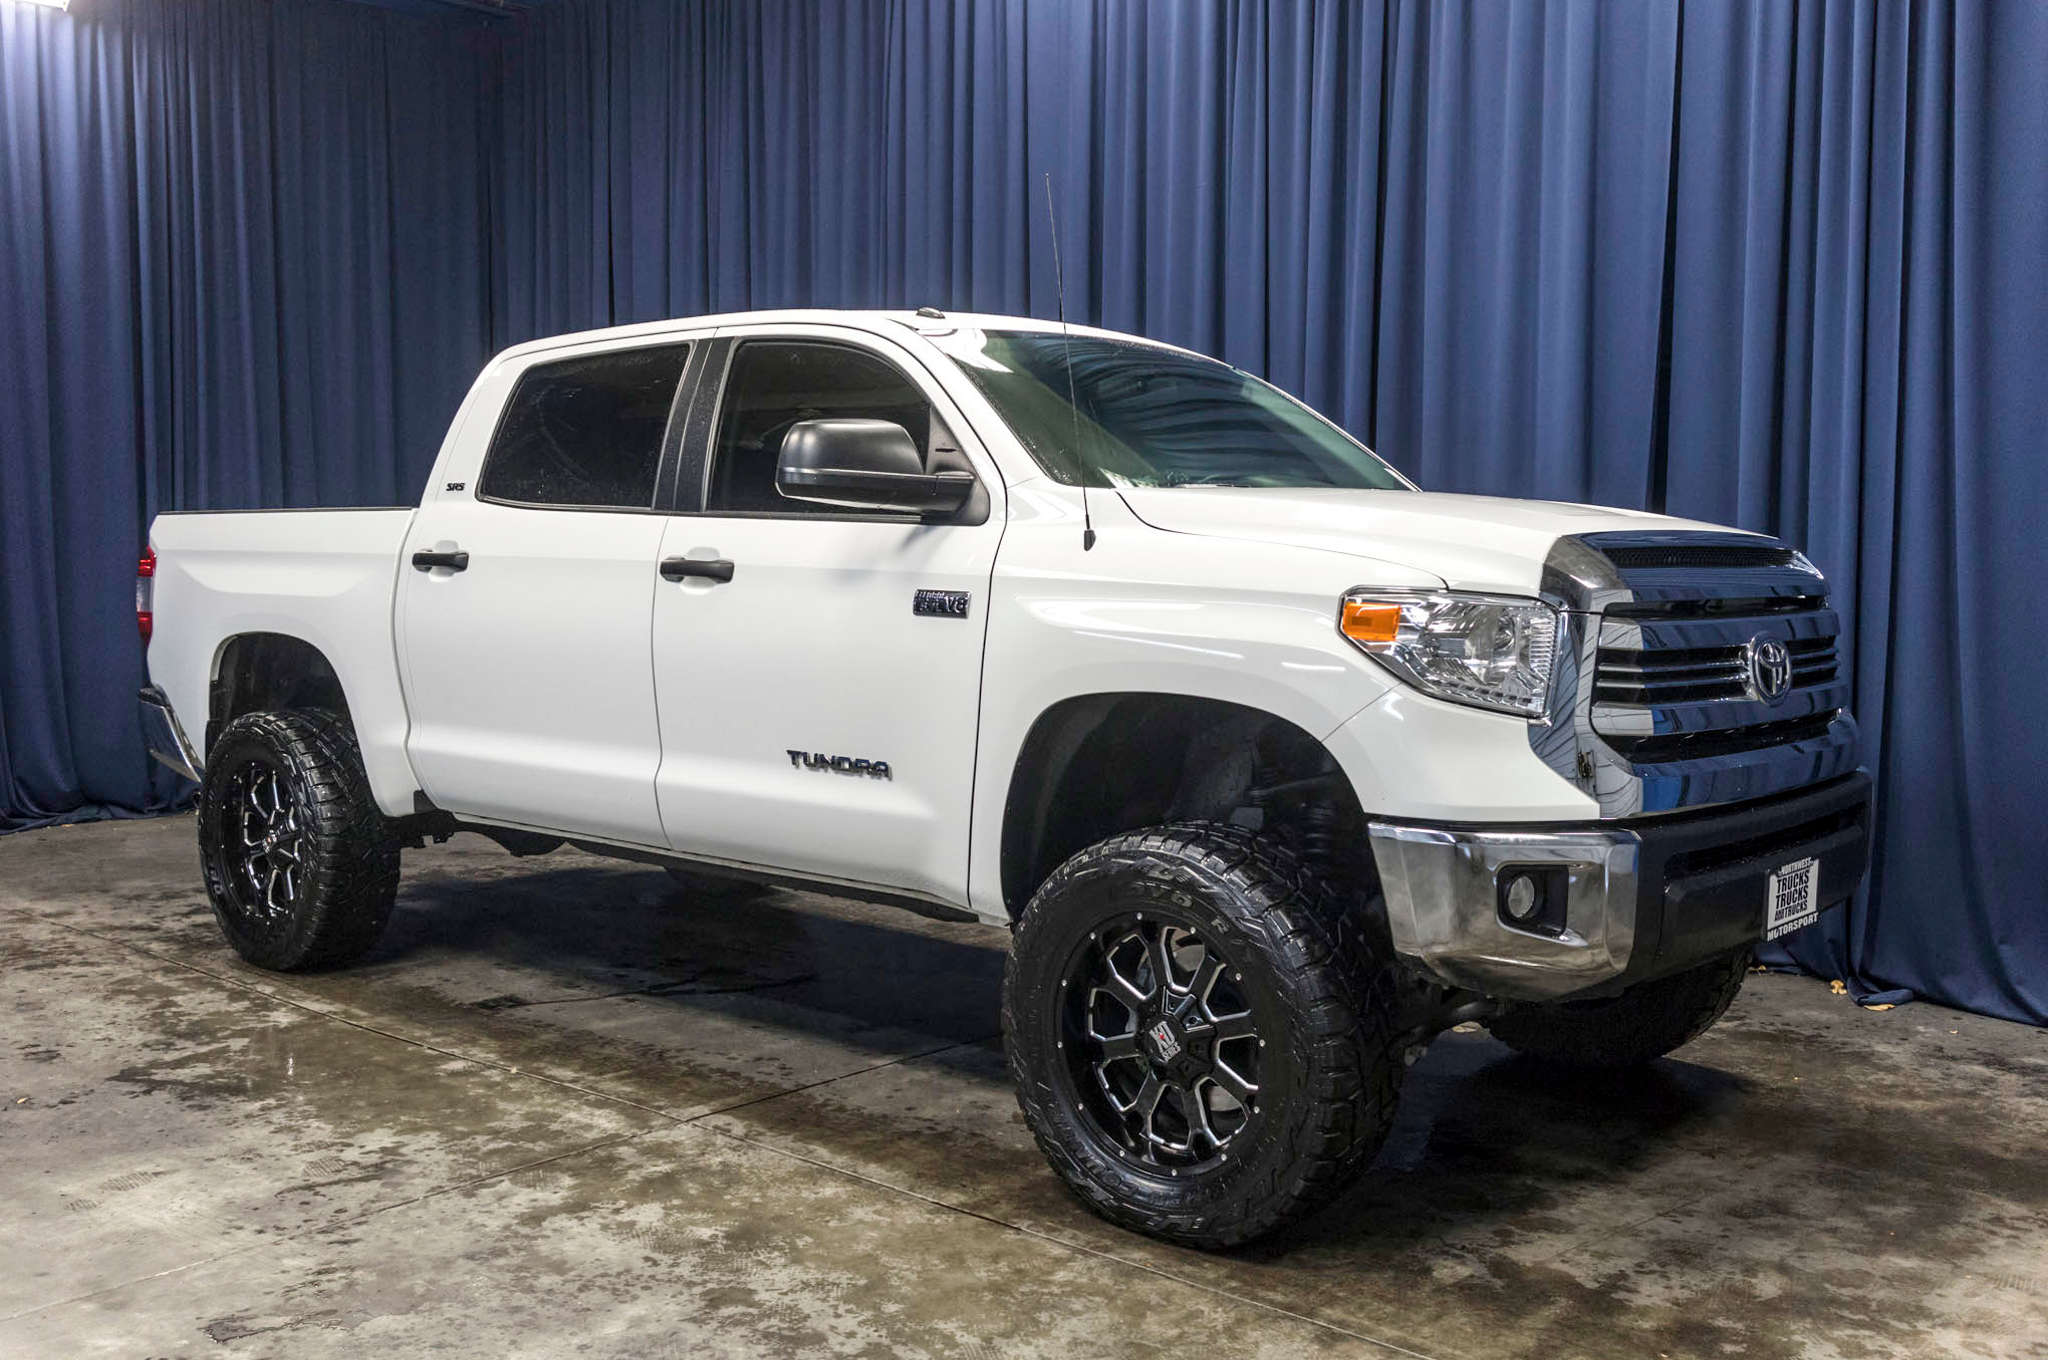 Used Lifted 2016 Toyota Tundra SR5 4x4 Truck For Sale